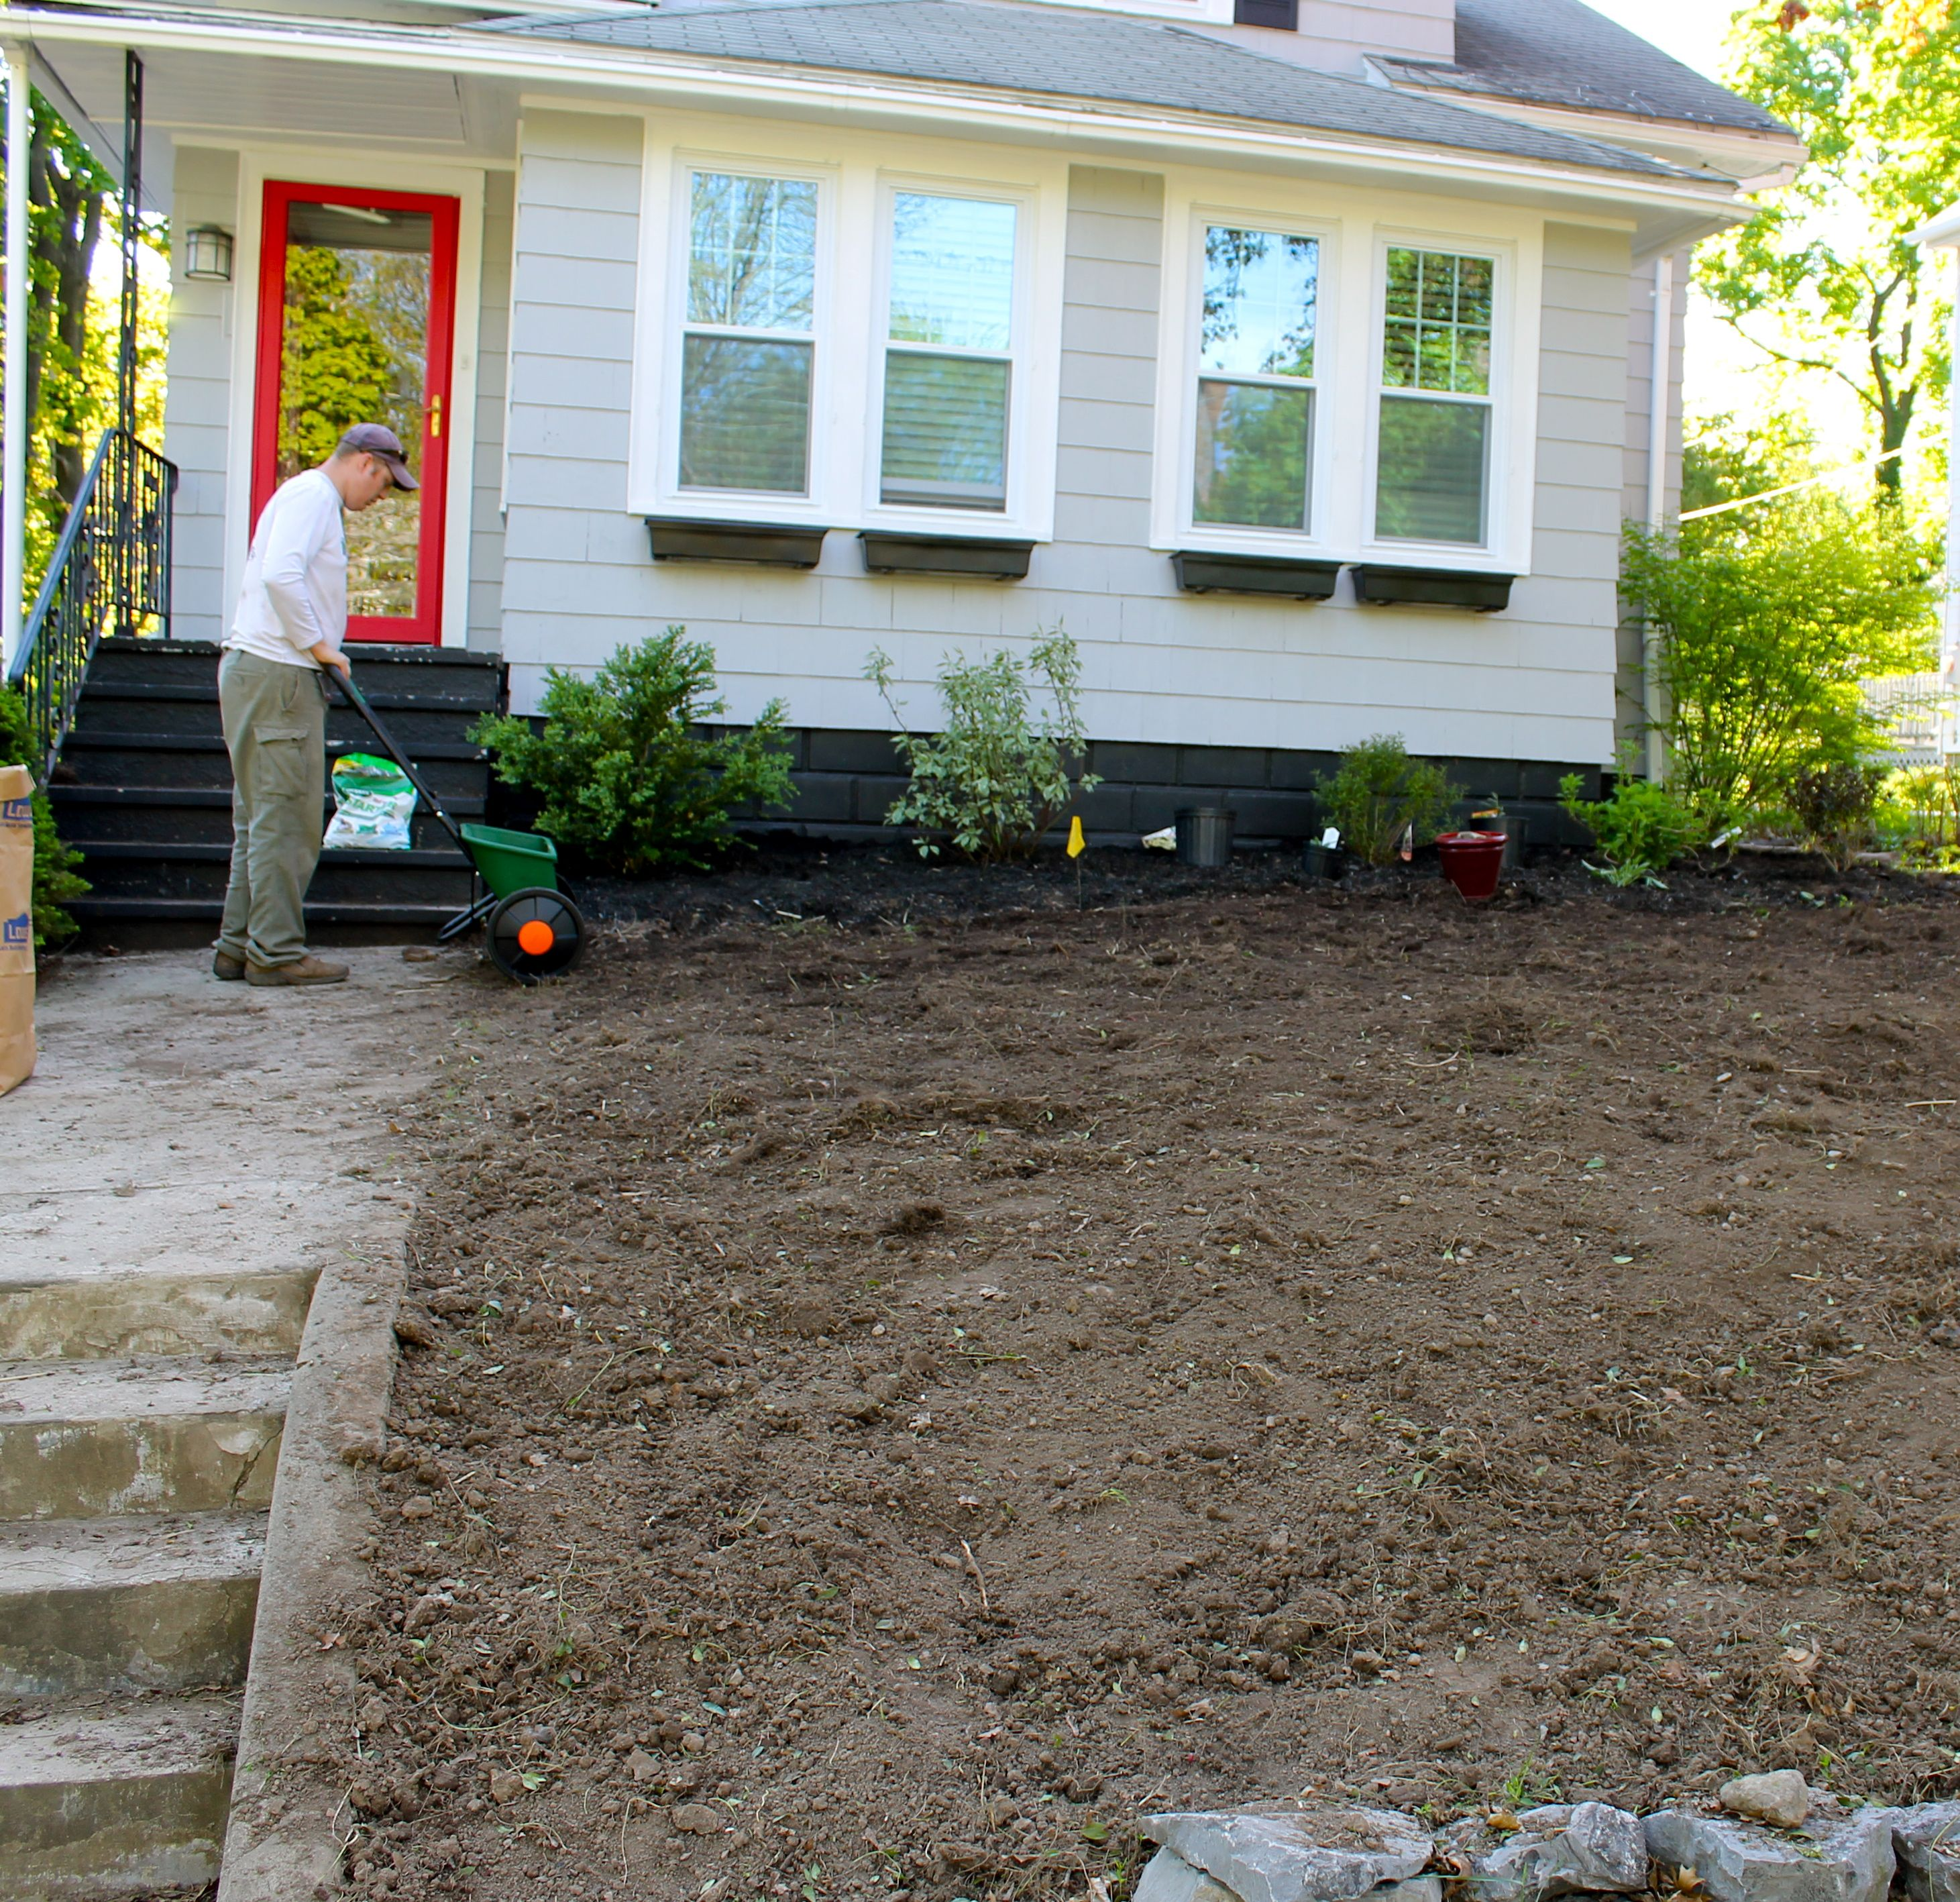 Tilling Backyard: The 2 Seasons